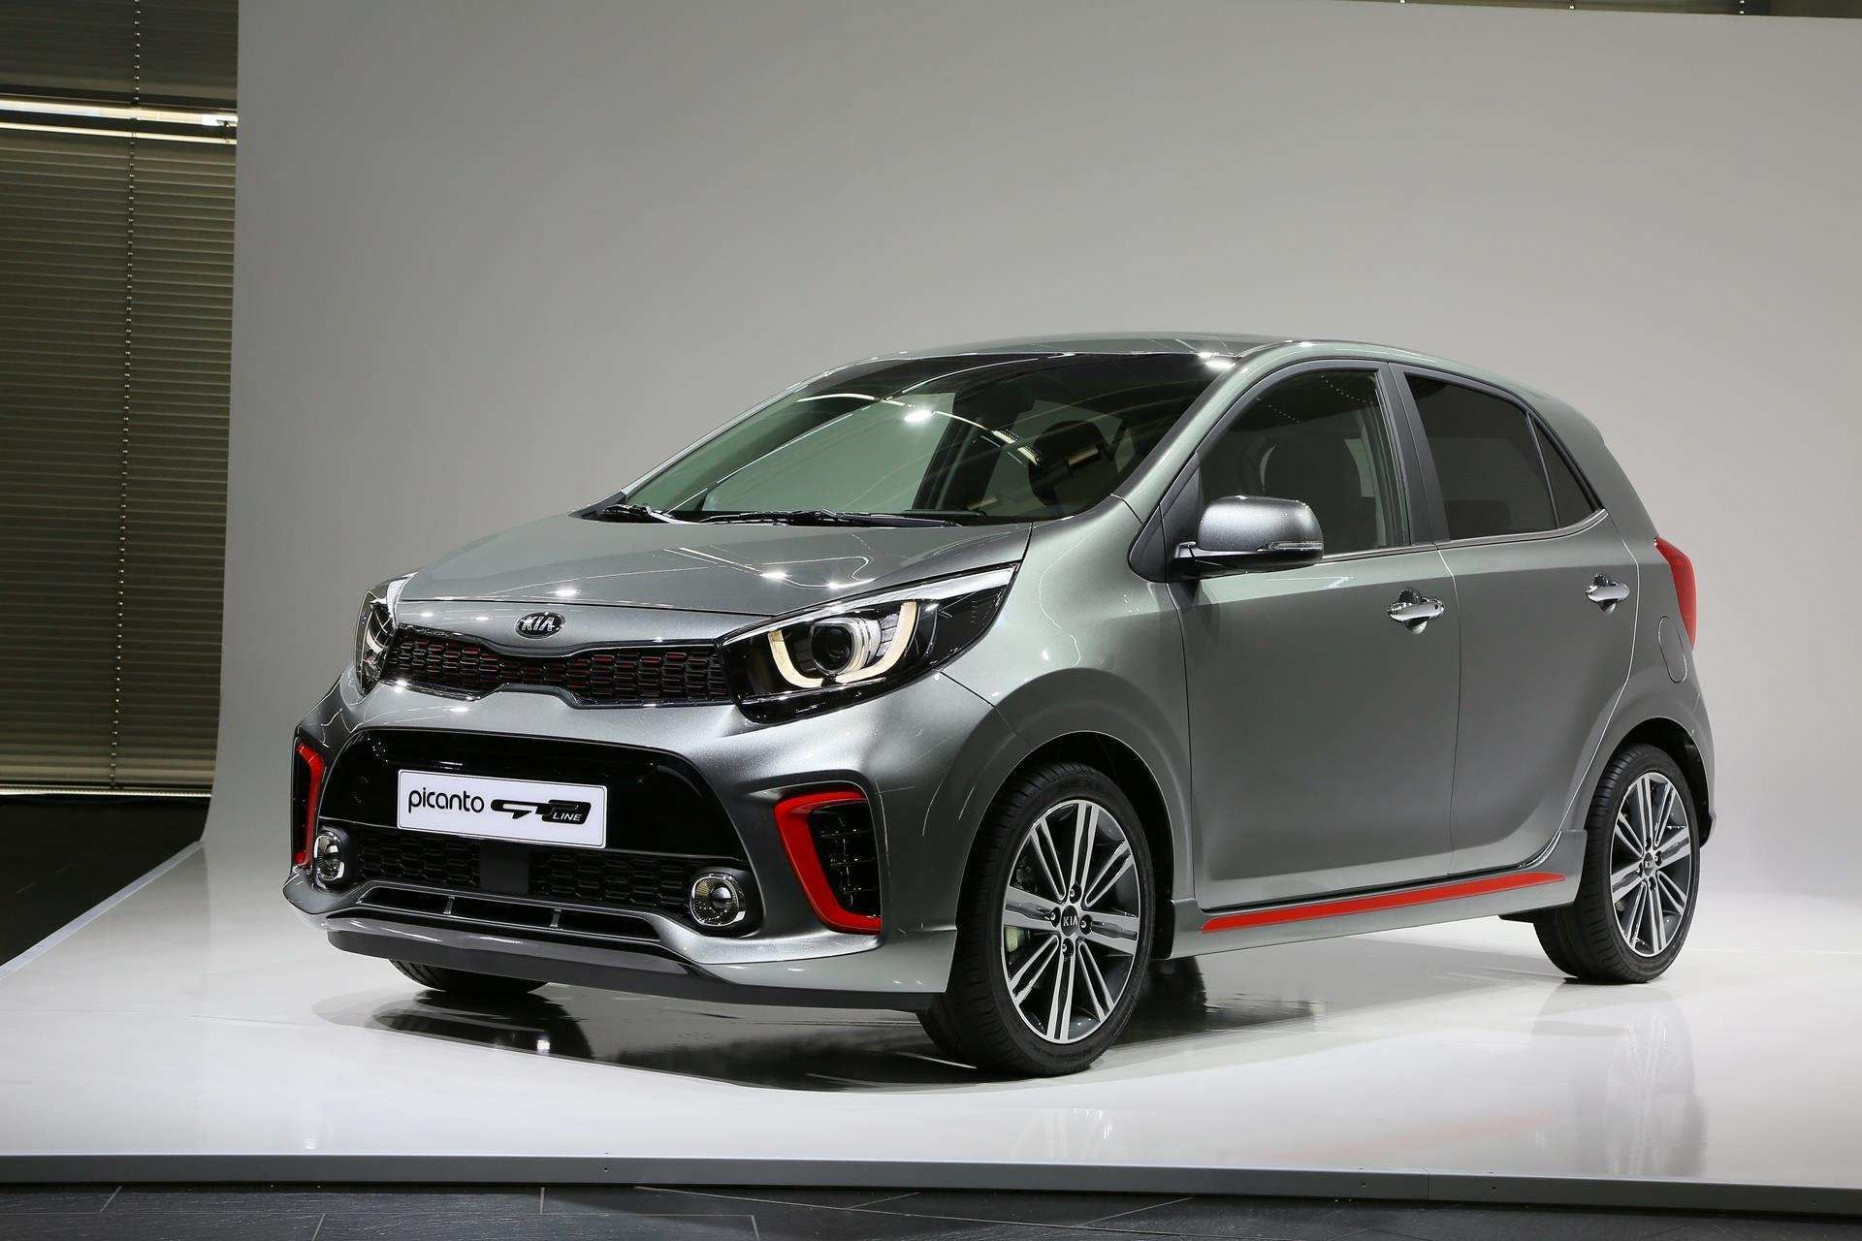 8+ kia picanto 8 price New Review